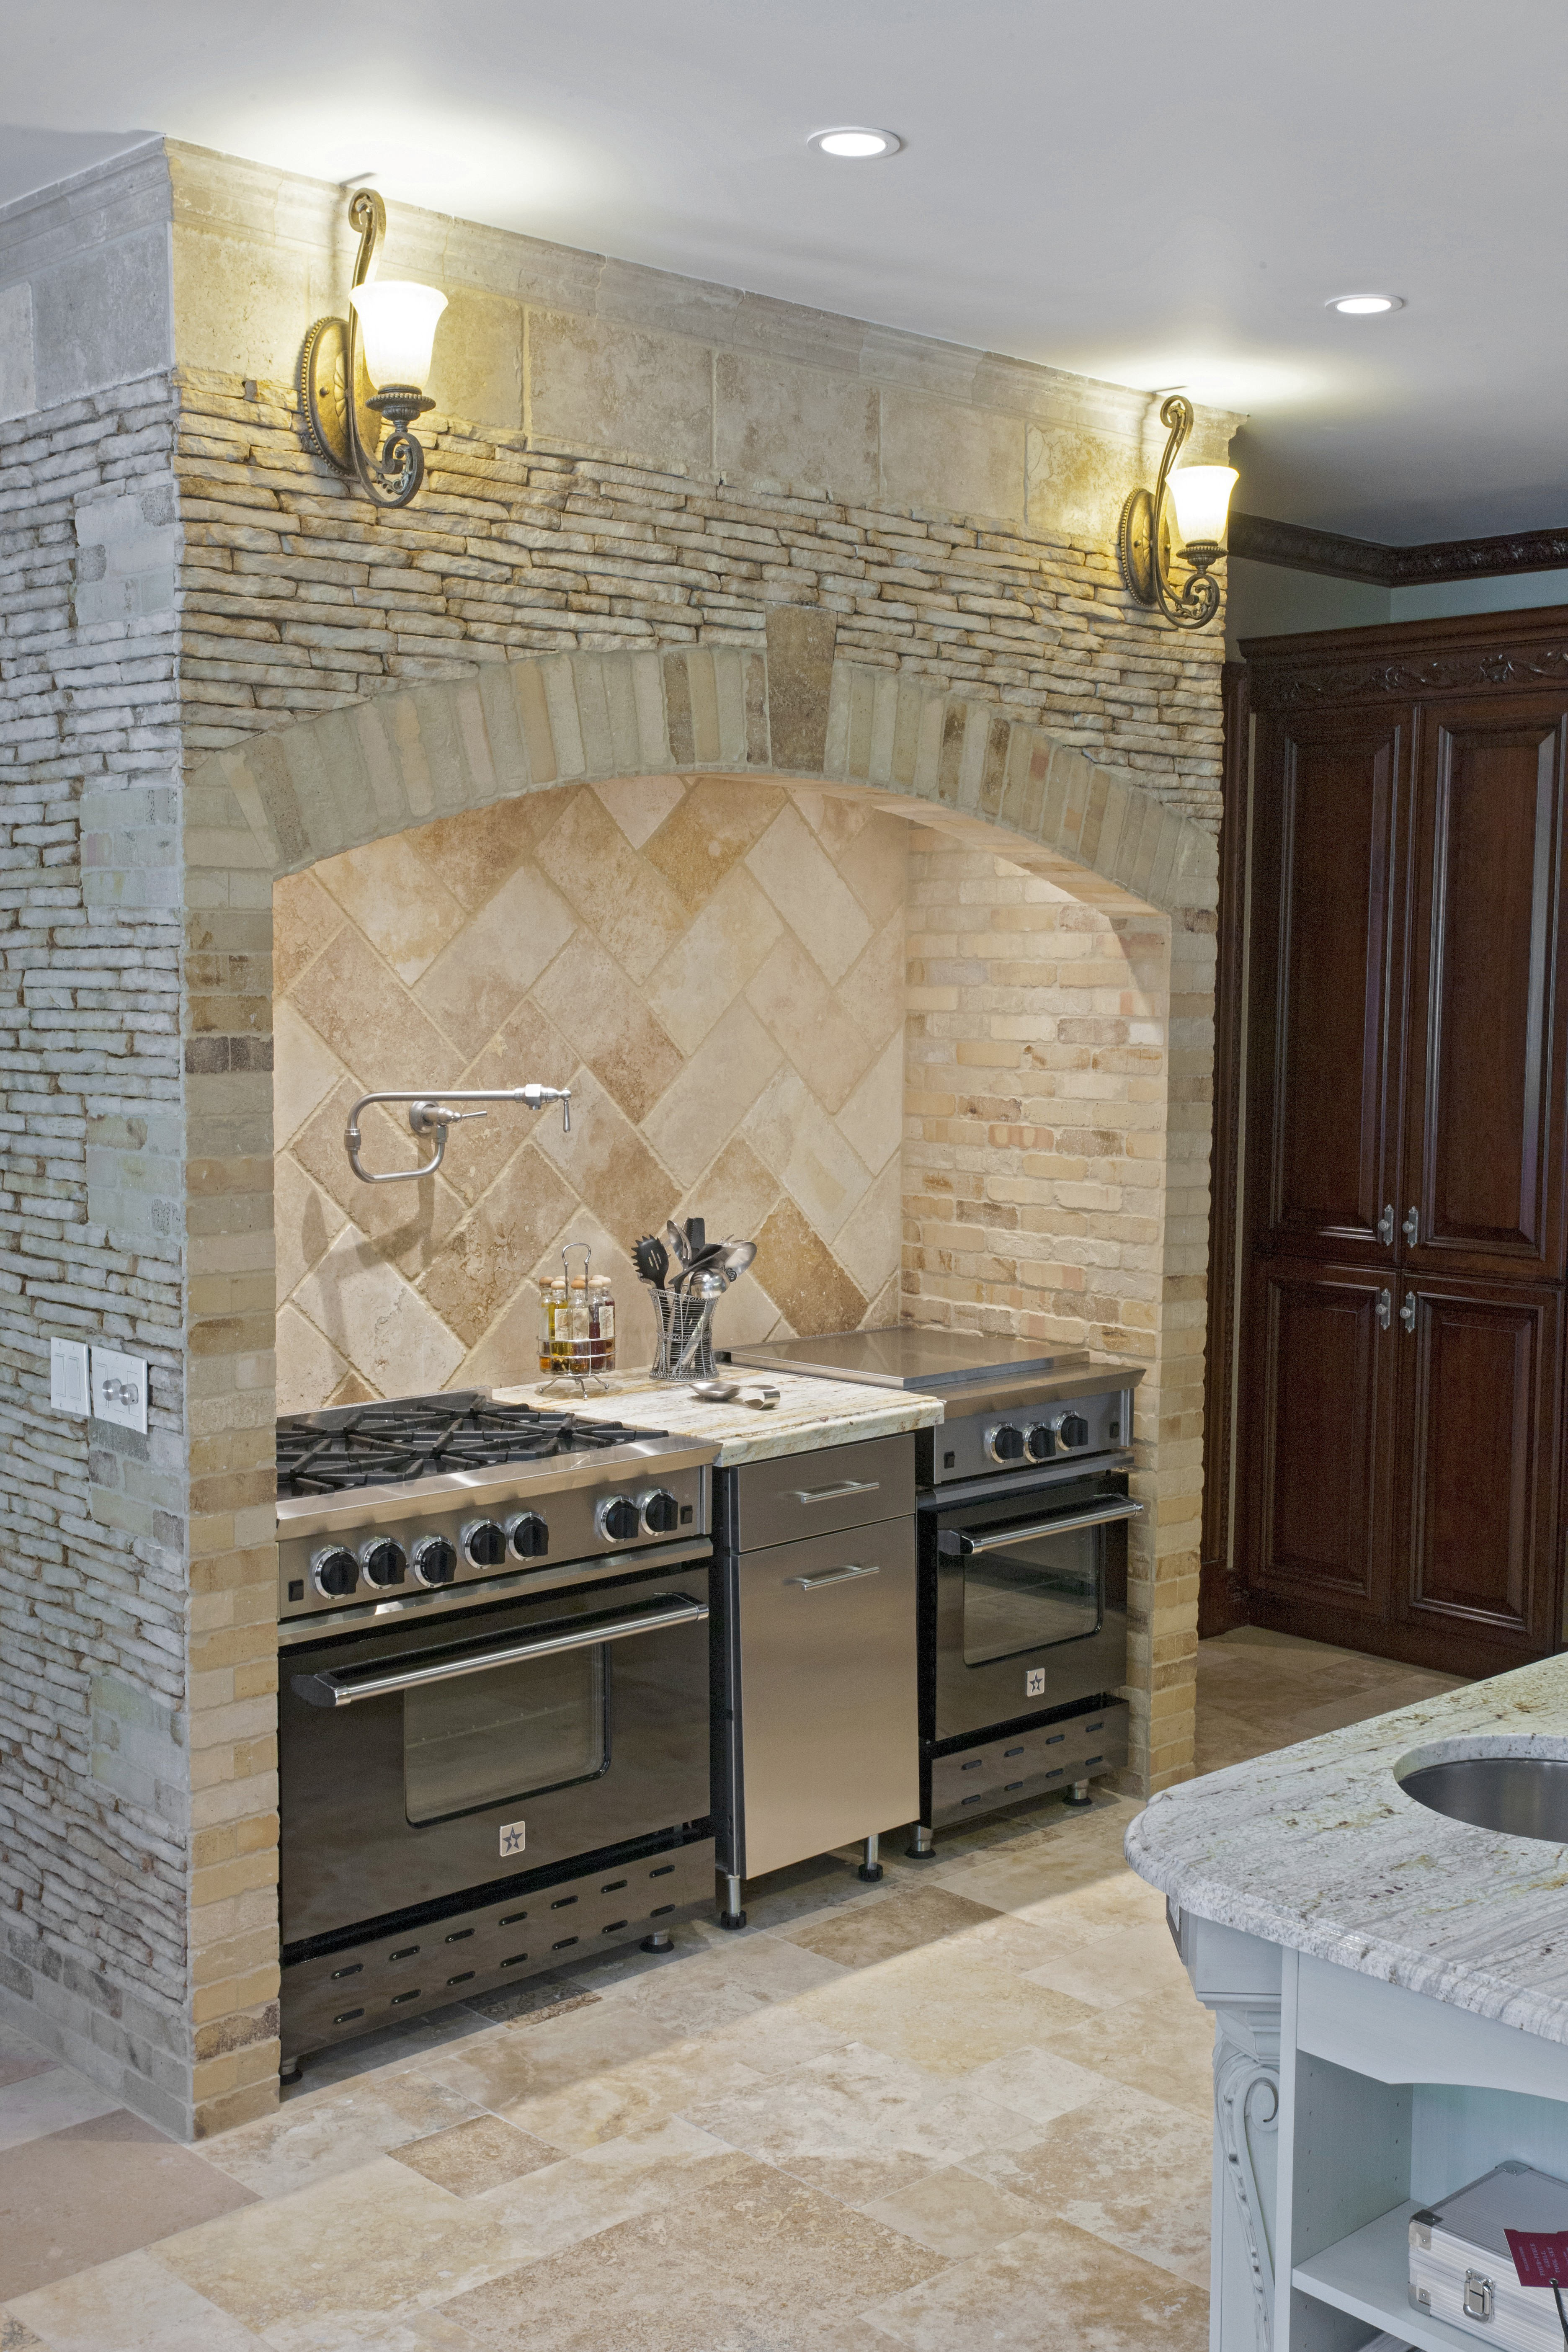 choice for hotel lobbies or convention centers that are meant to impress travertine walls are also growing in popularity among homeowners as well